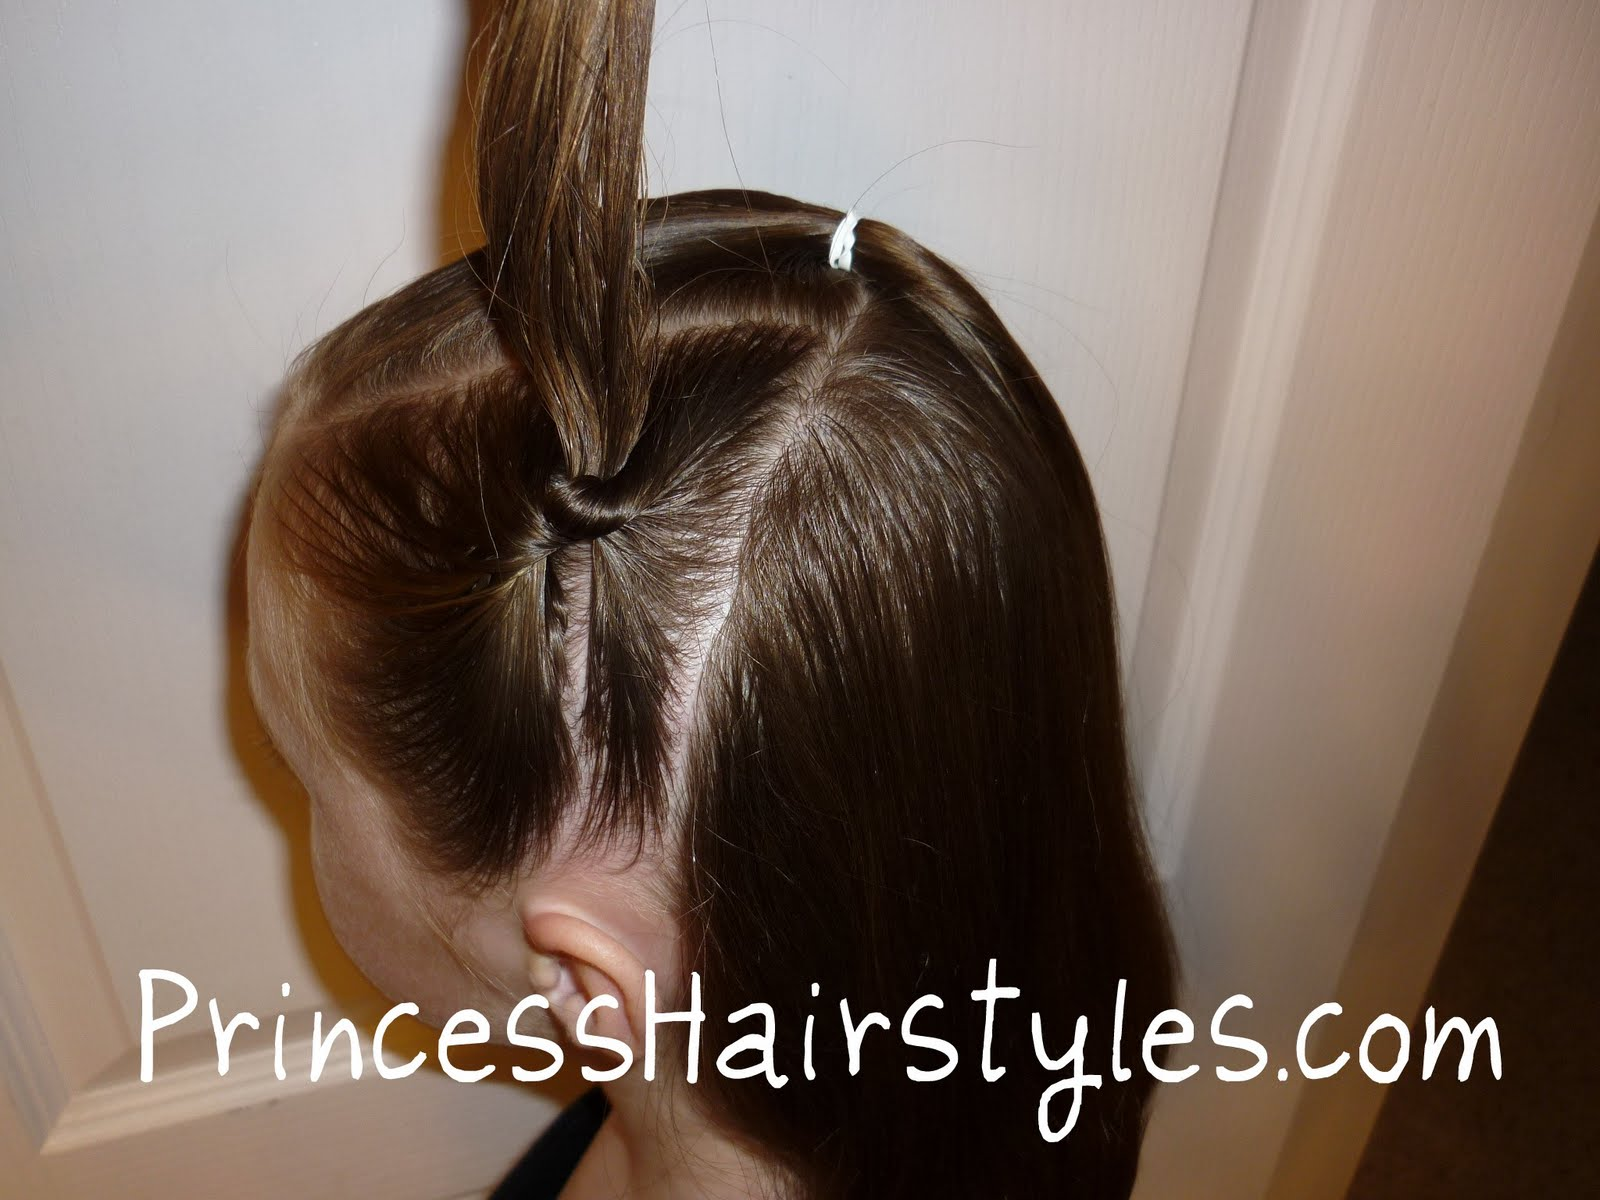 Christmas Hairstyles Easy.Christmas Hairstyle Easy Hairstyles For Girls Princess